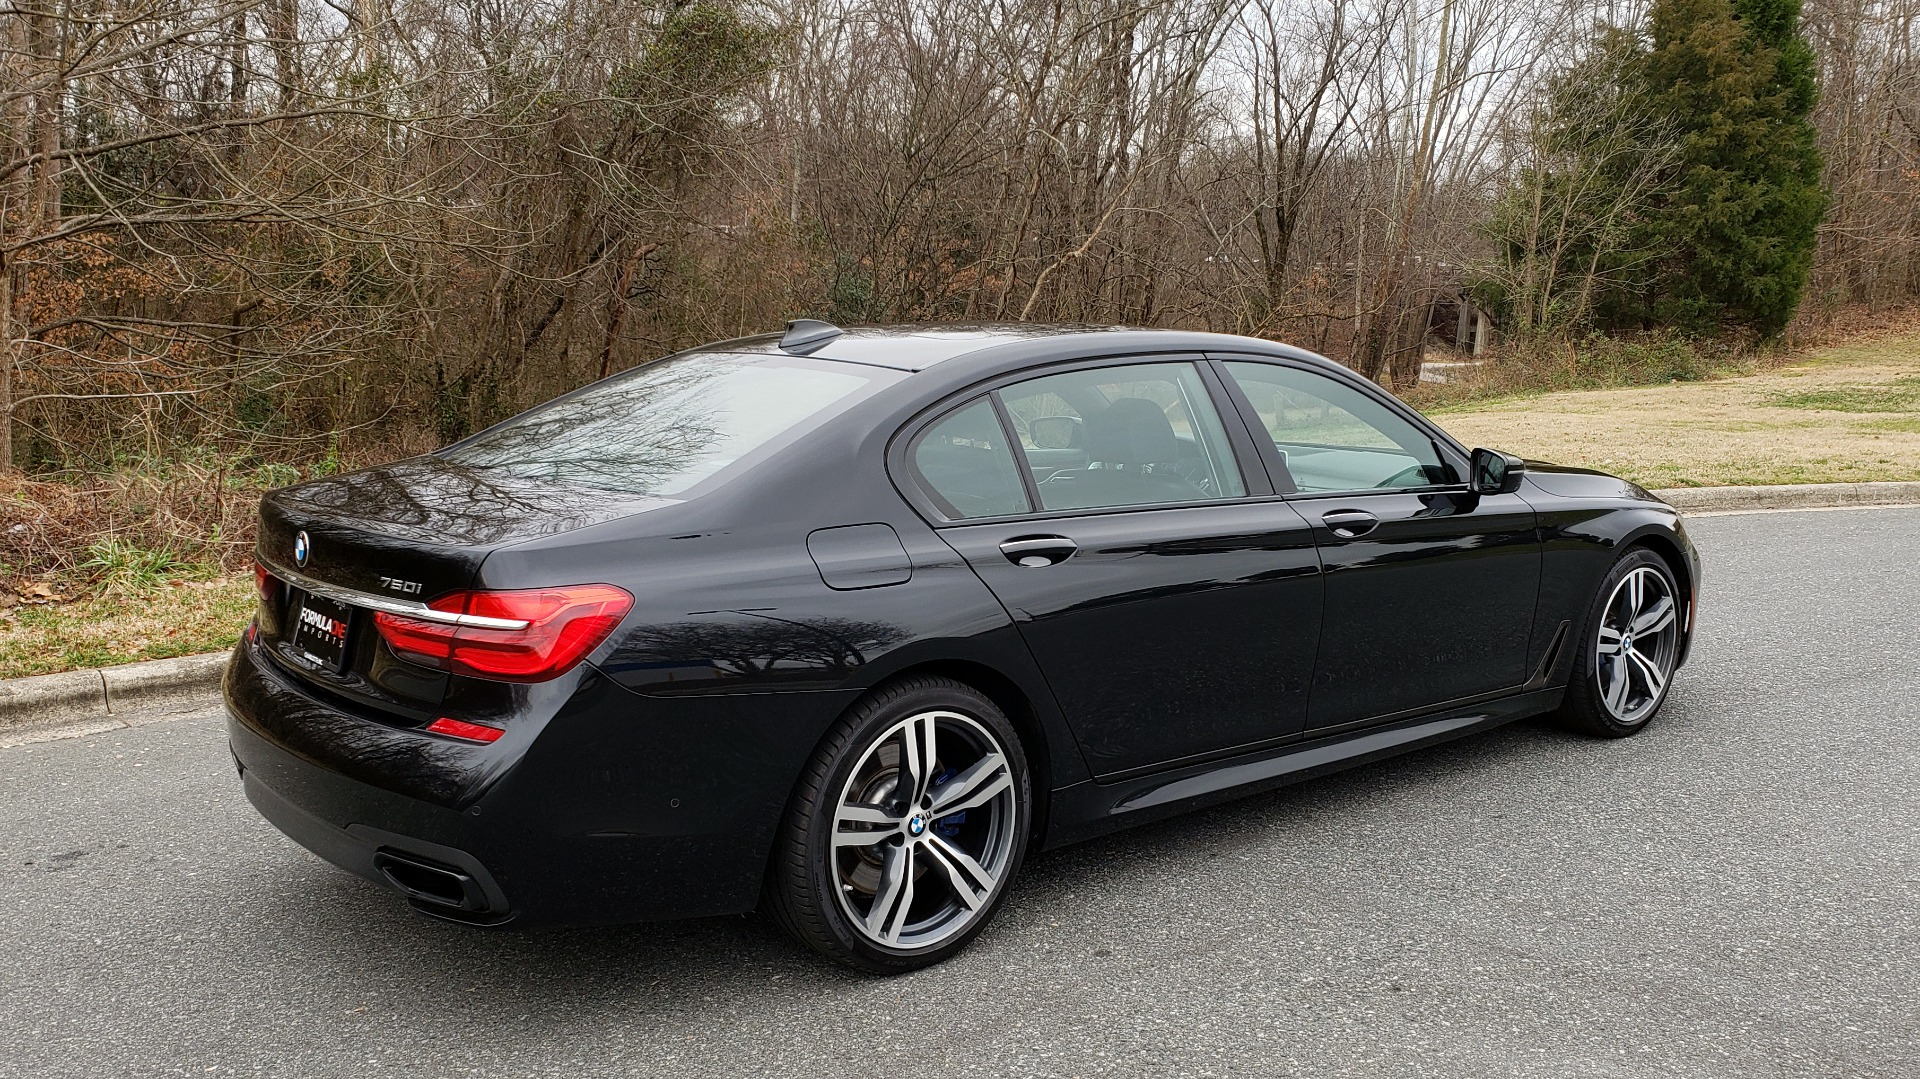 Used 2017 BMW 7 SERIES 750i M-SPORT / AUTOBAHN / EXEC / DRVR ASST PLUS II / CLD WTHR for sale Sold at Formula Imports in Charlotte NC 28227 6